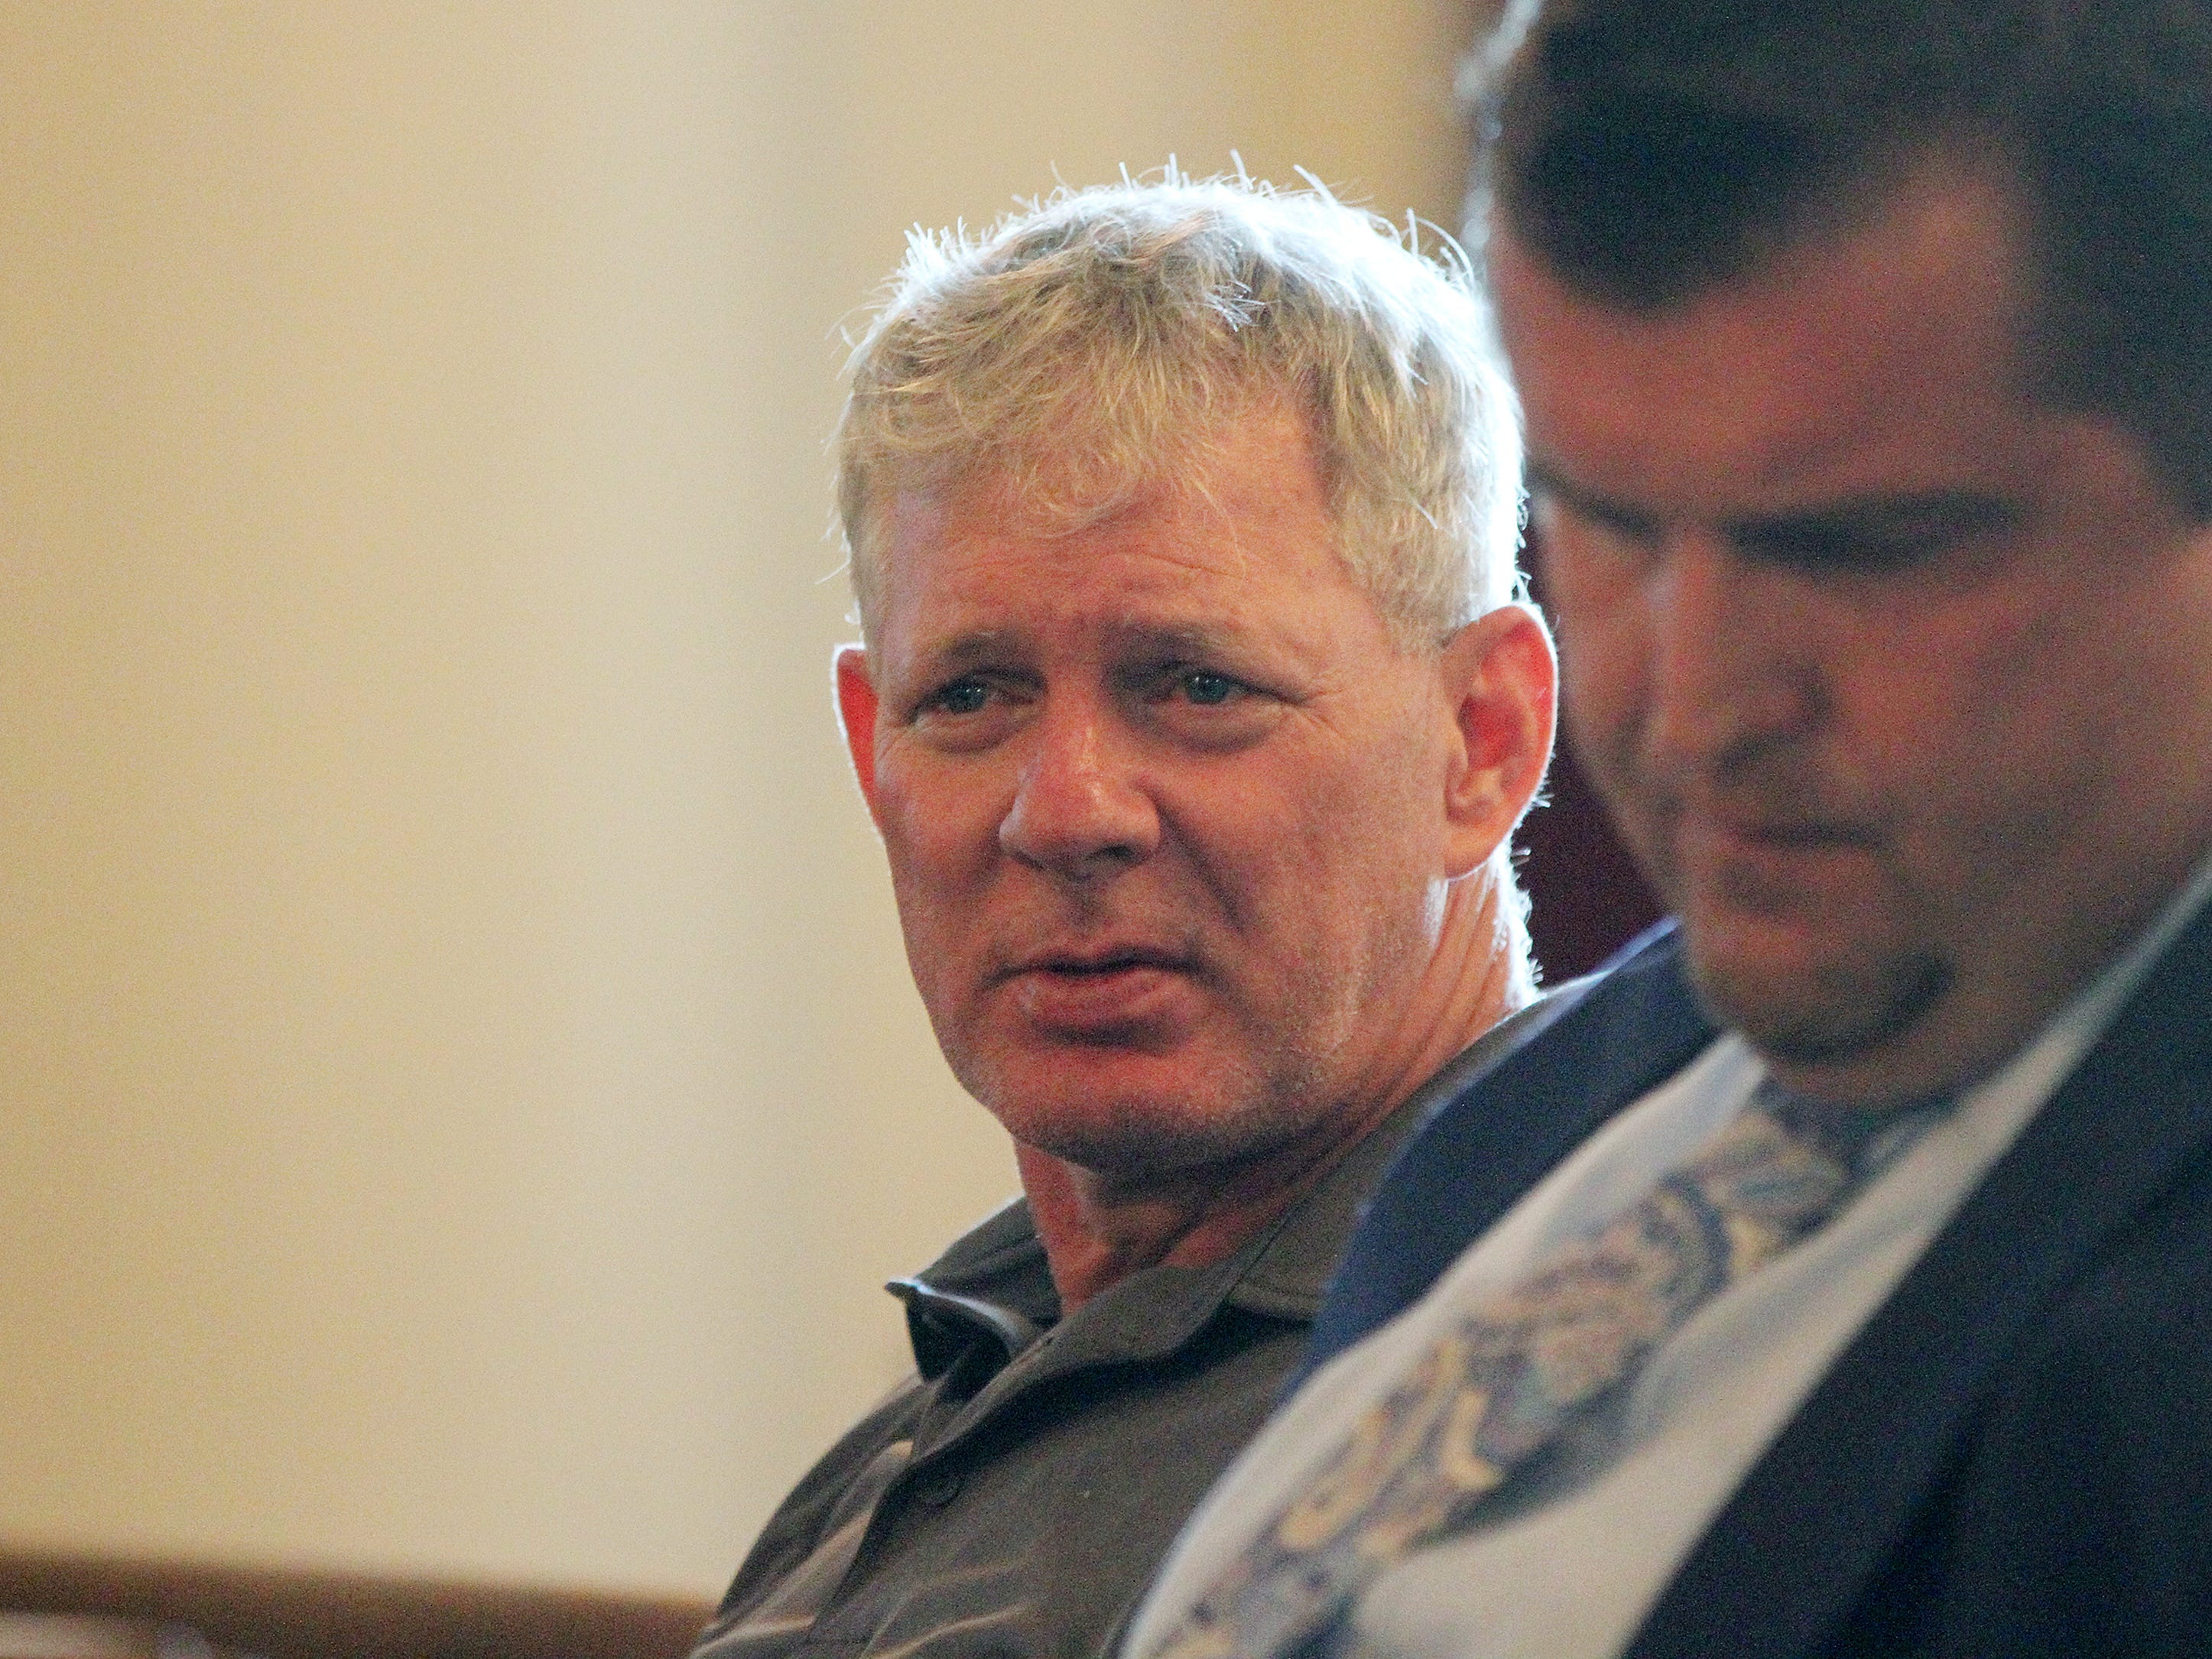 Former Major League Baseball player Lenny Dykstra, who is facing charges related to allegedly making terrorist threats against an Uber driver in Linden in May, rejects plea offer before Union County Superior Court Judge Joseph Donahue at Union County Courthouse in Elizabeth, NJ Thursday August 9, 2018. His case will go to the grand jury.